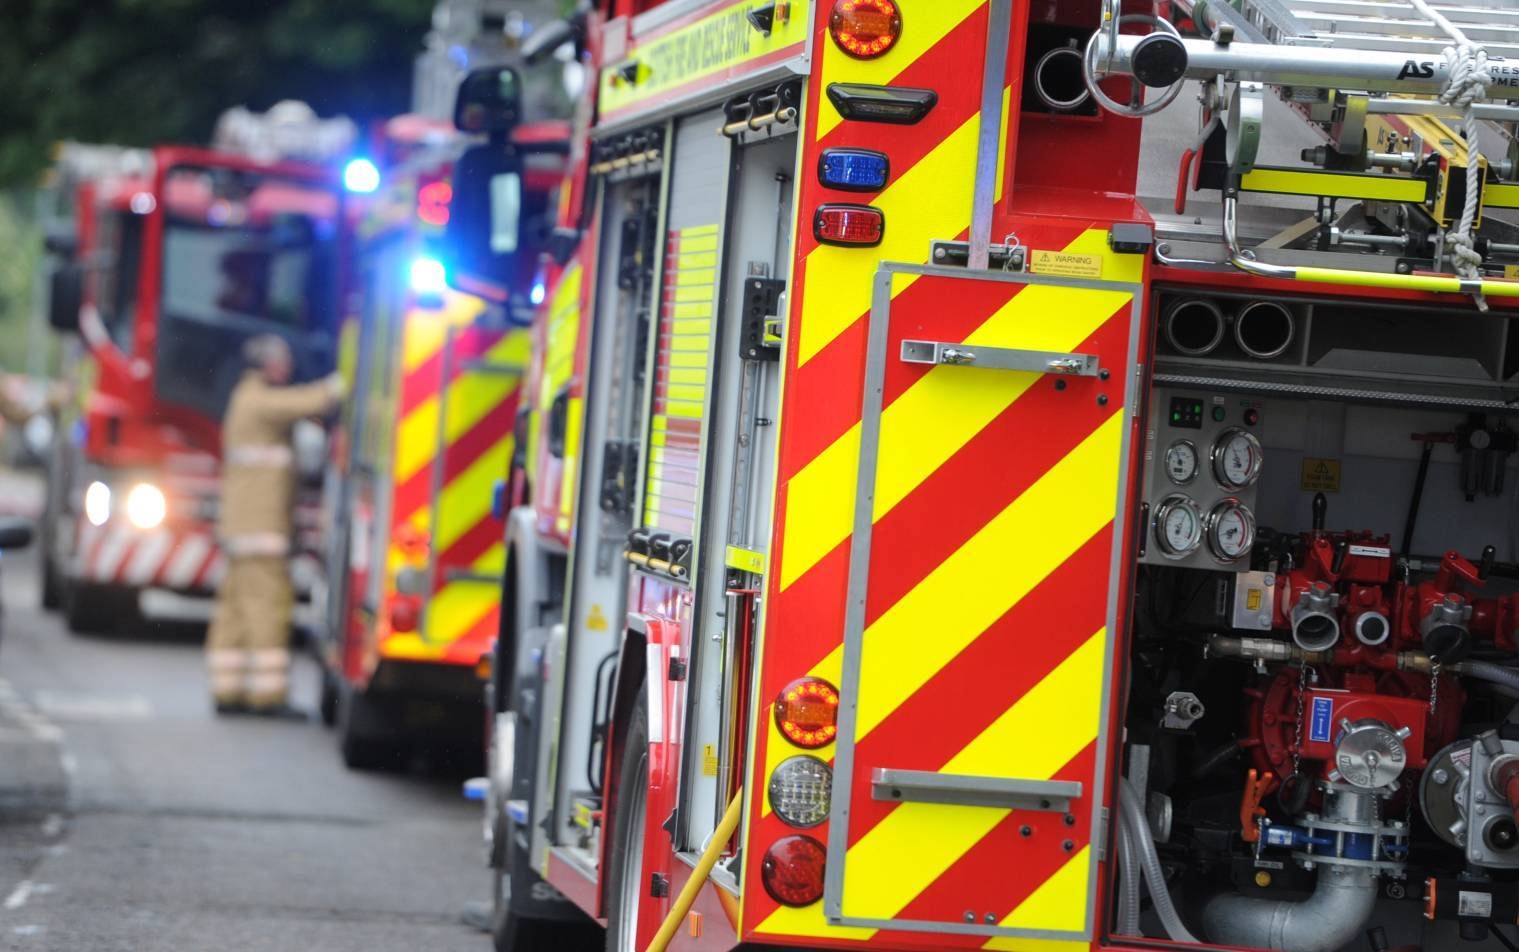 One fire engine was called to the scene.